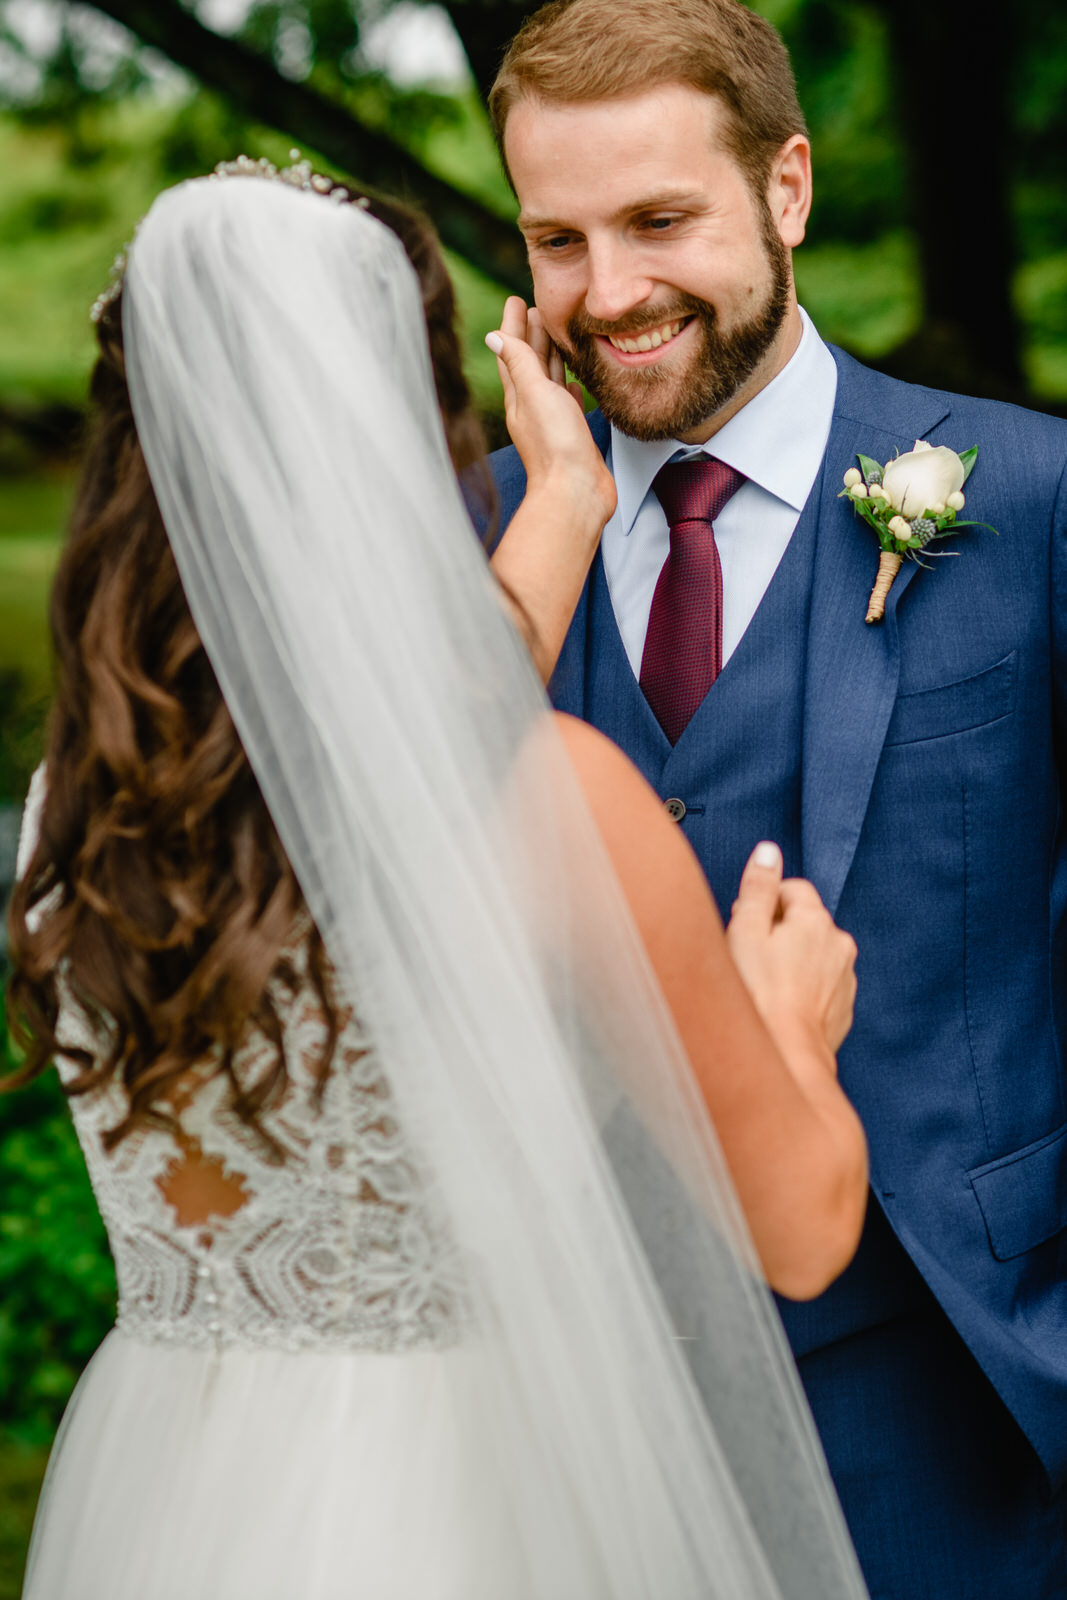 bride touching grooms face in first look emotional moment